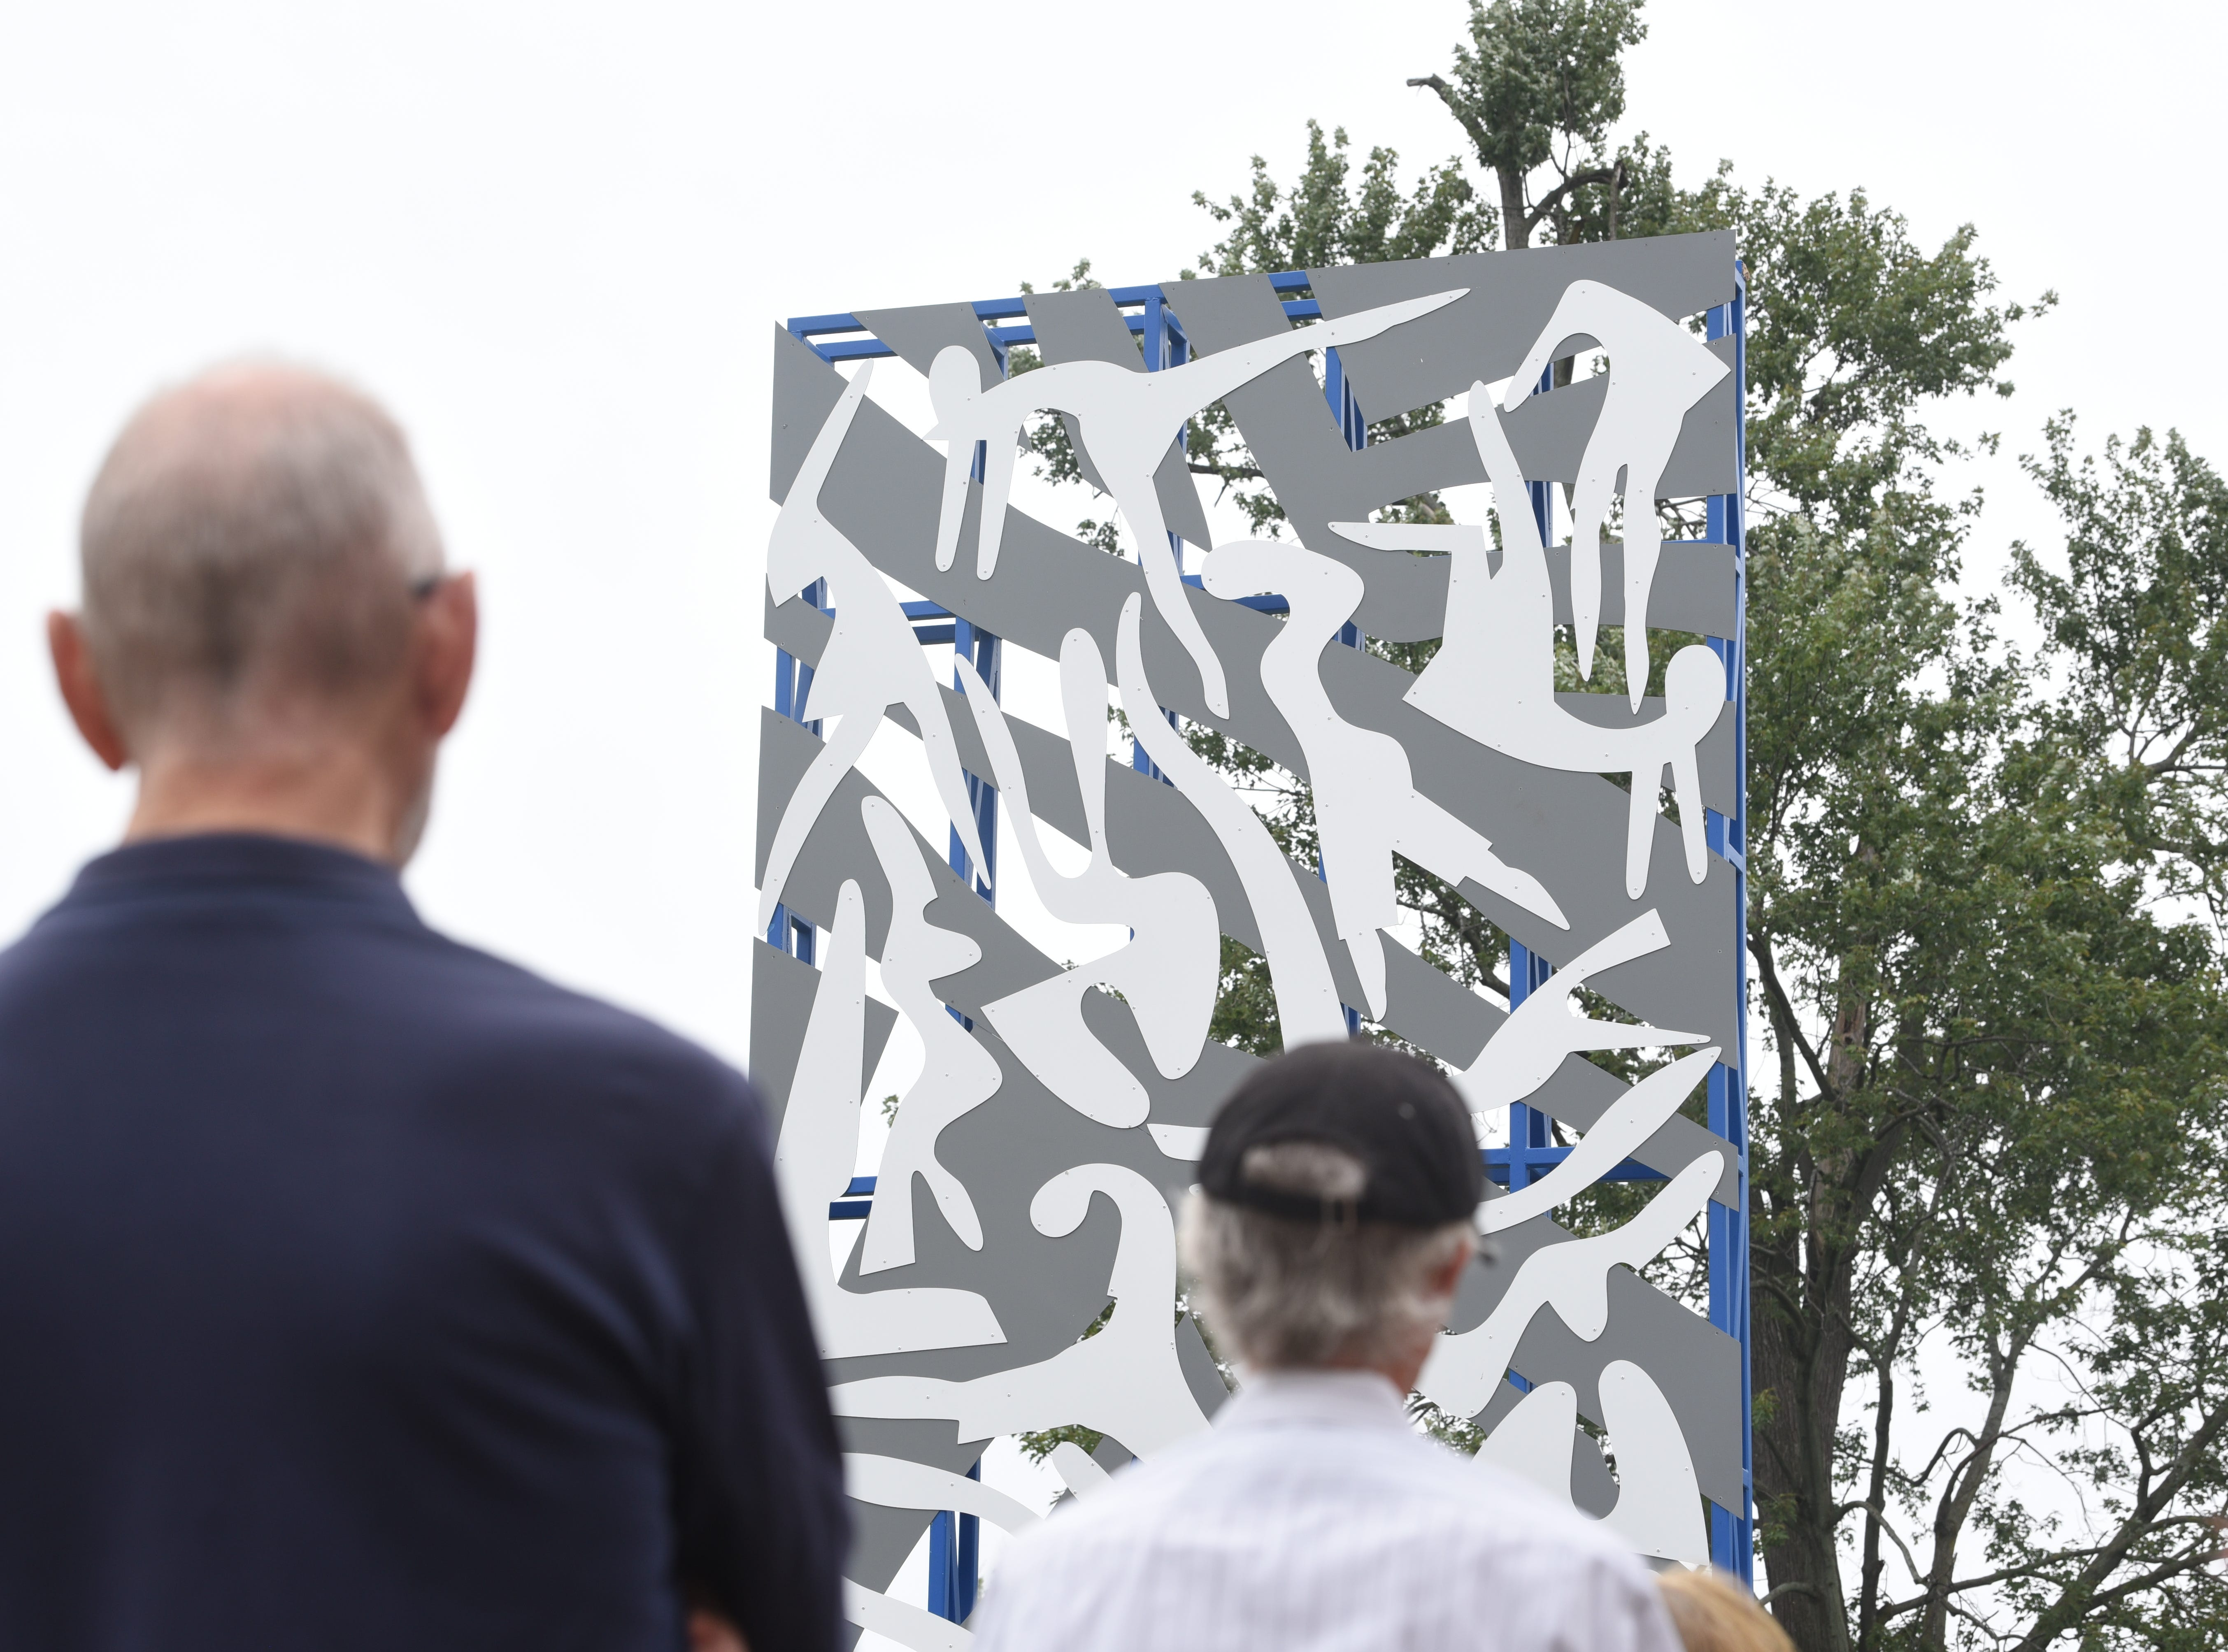 The 24-foot sculpture, entitled Unity North is comprised of steel and aluminum, with a vibrant blue steel base and vertical core faced with grey aluminum panels and 22 figures in white on each side by artist Charles McGee.